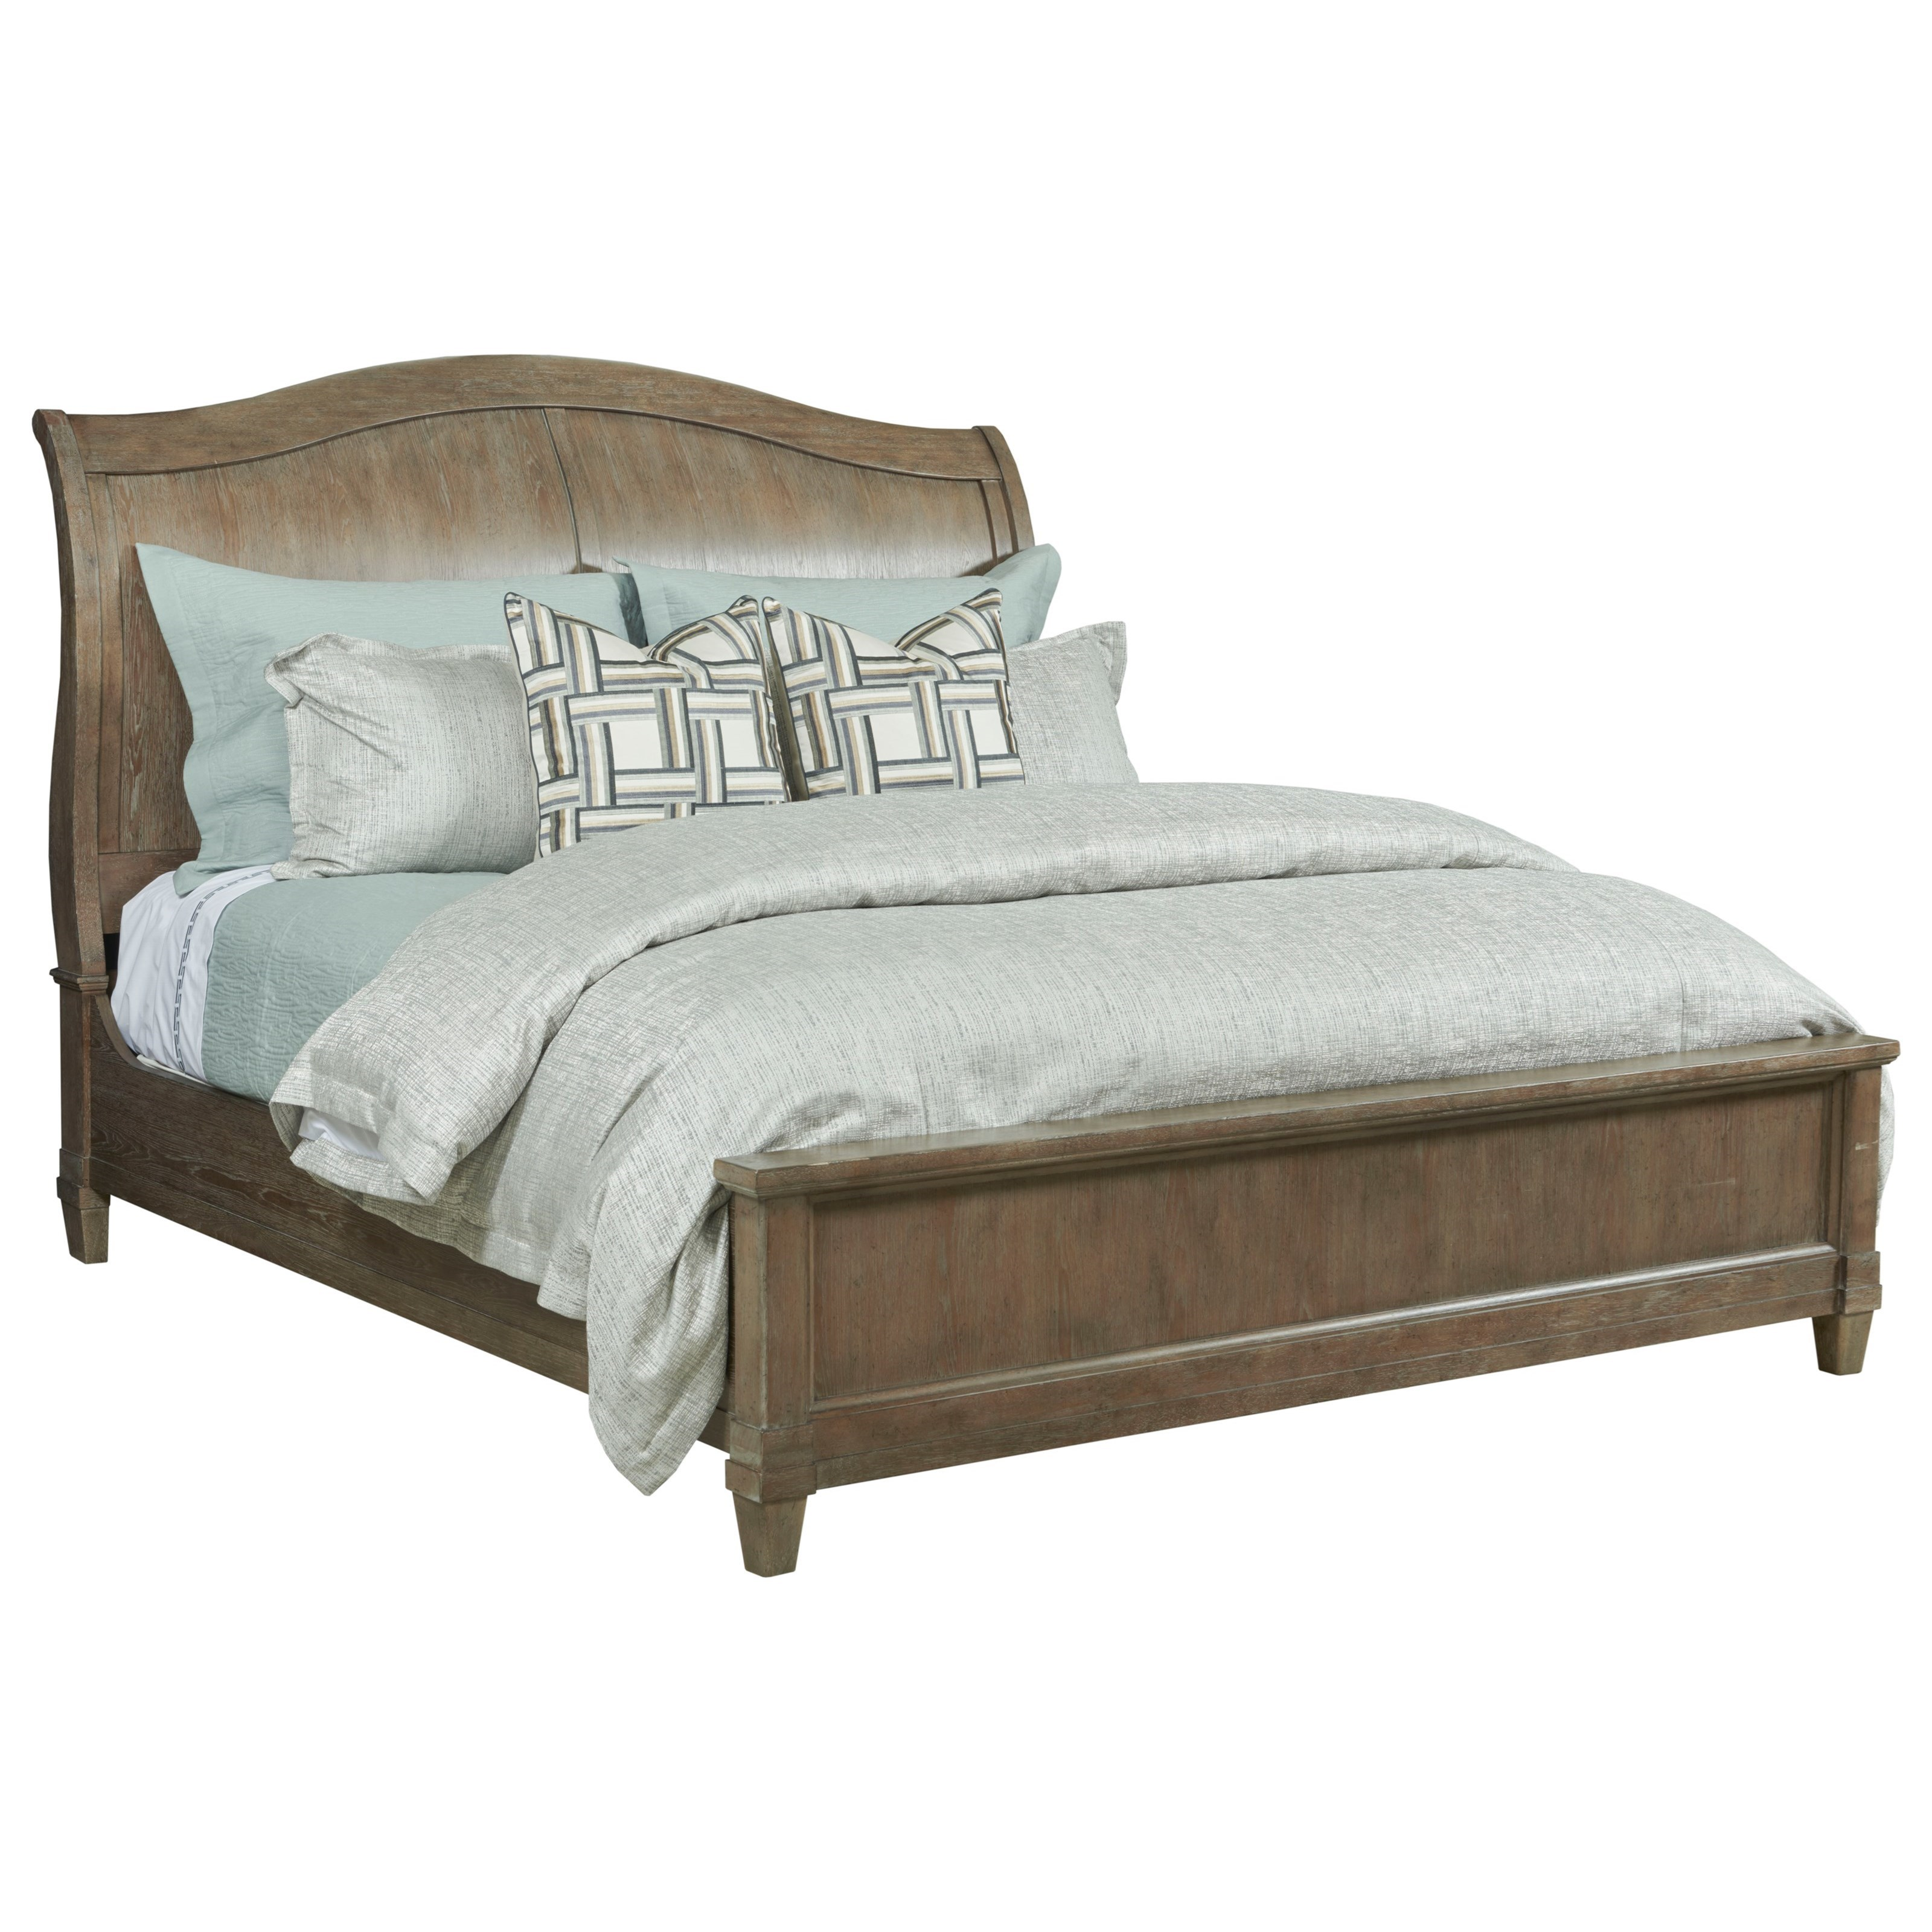 Anson King Sleigh Bed by American Drew at Alison Craig Home Furnishings